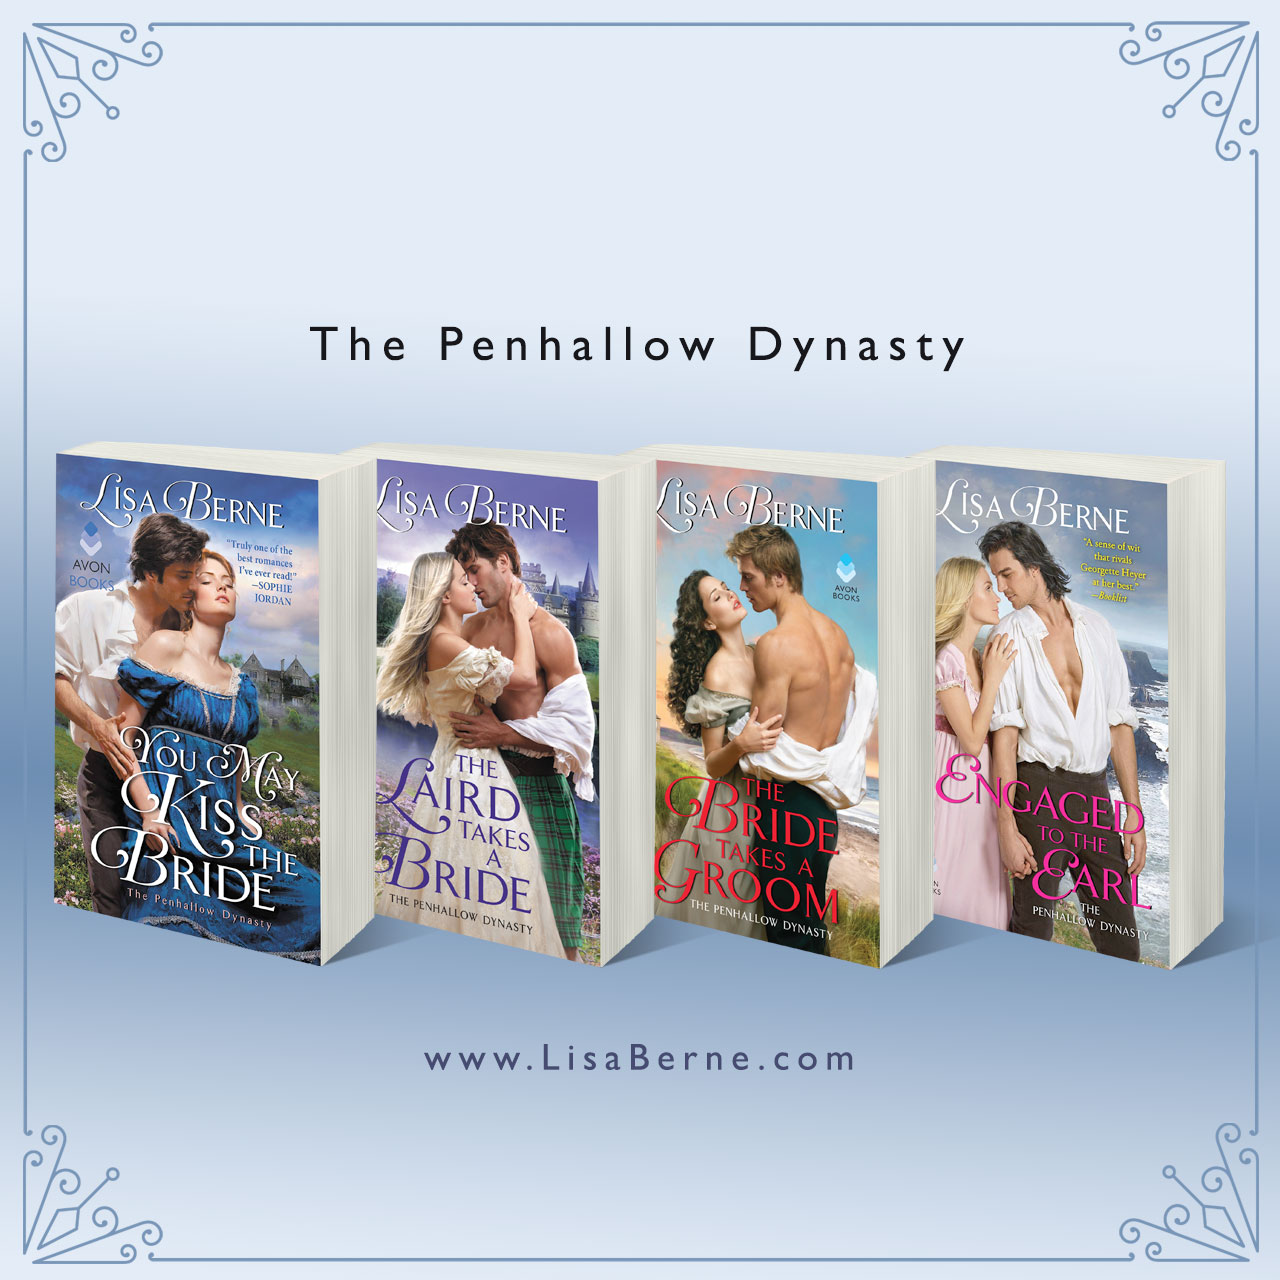 Graphic: The Penhallow Dynasty series by Lisa Berne (Avon Books)